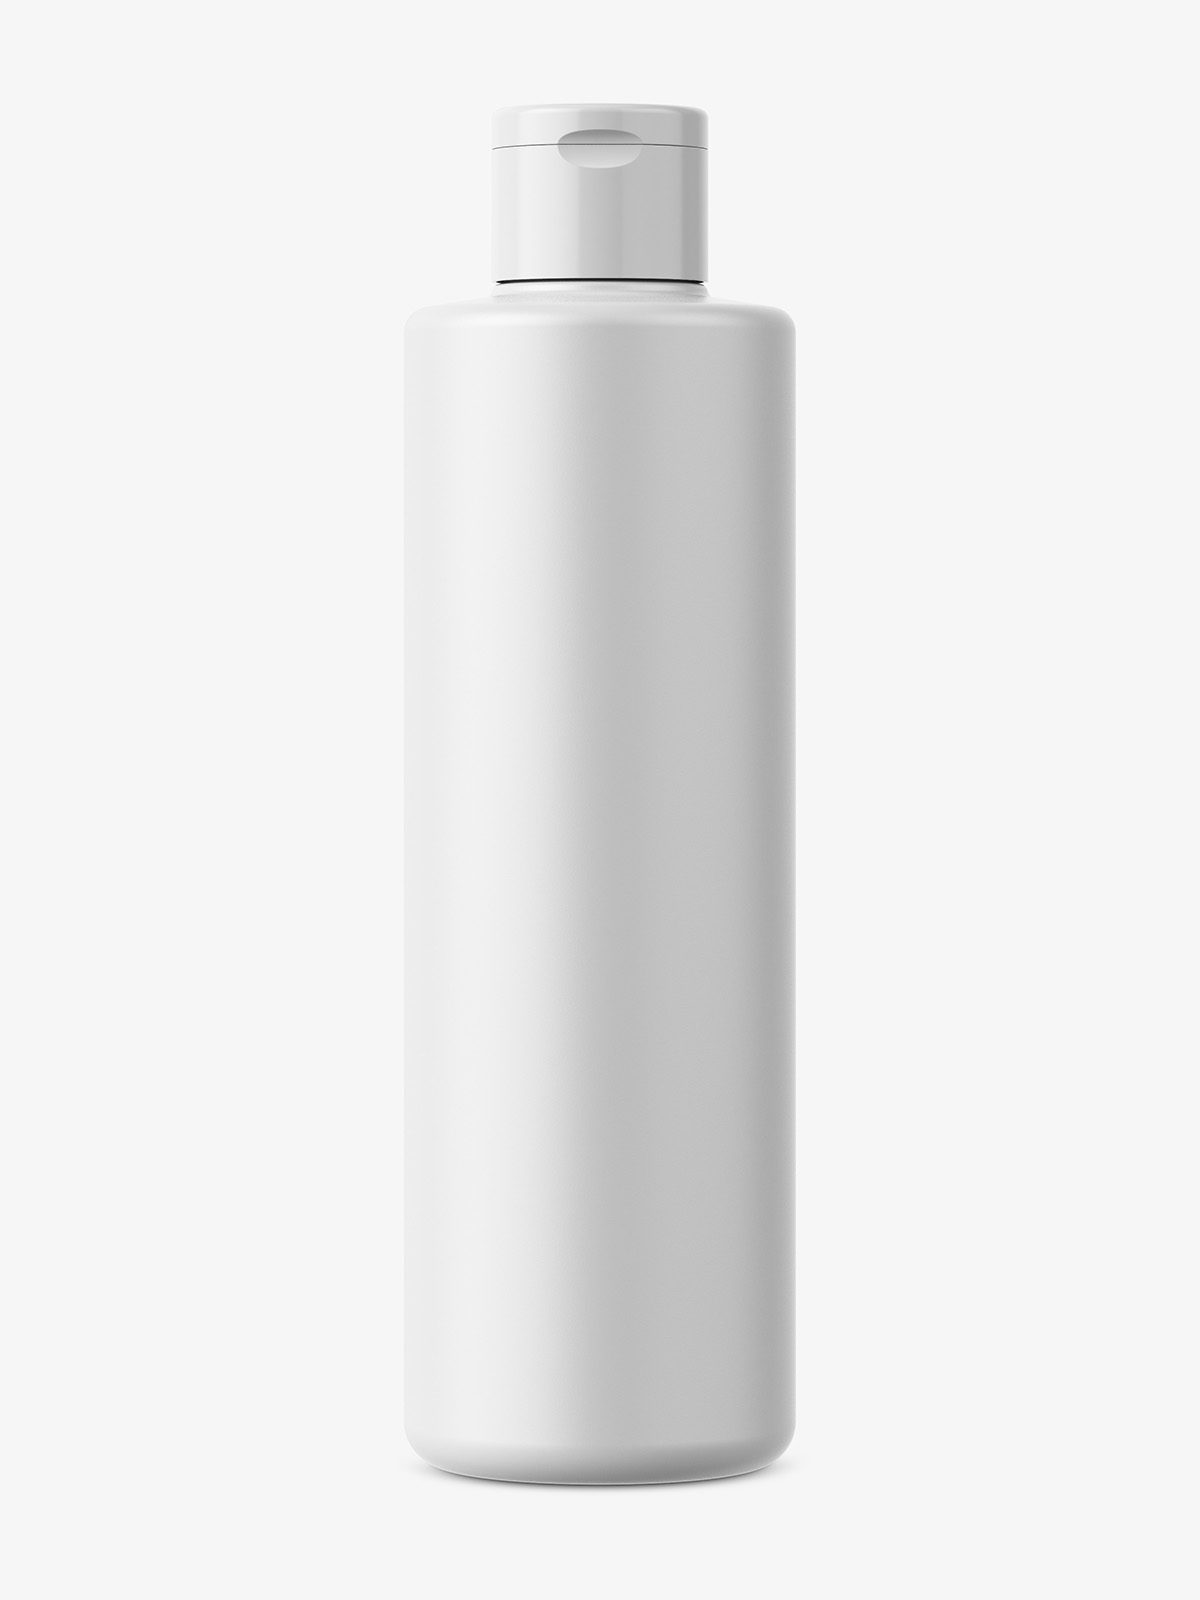 Simple round plastic bottle mockup / matt